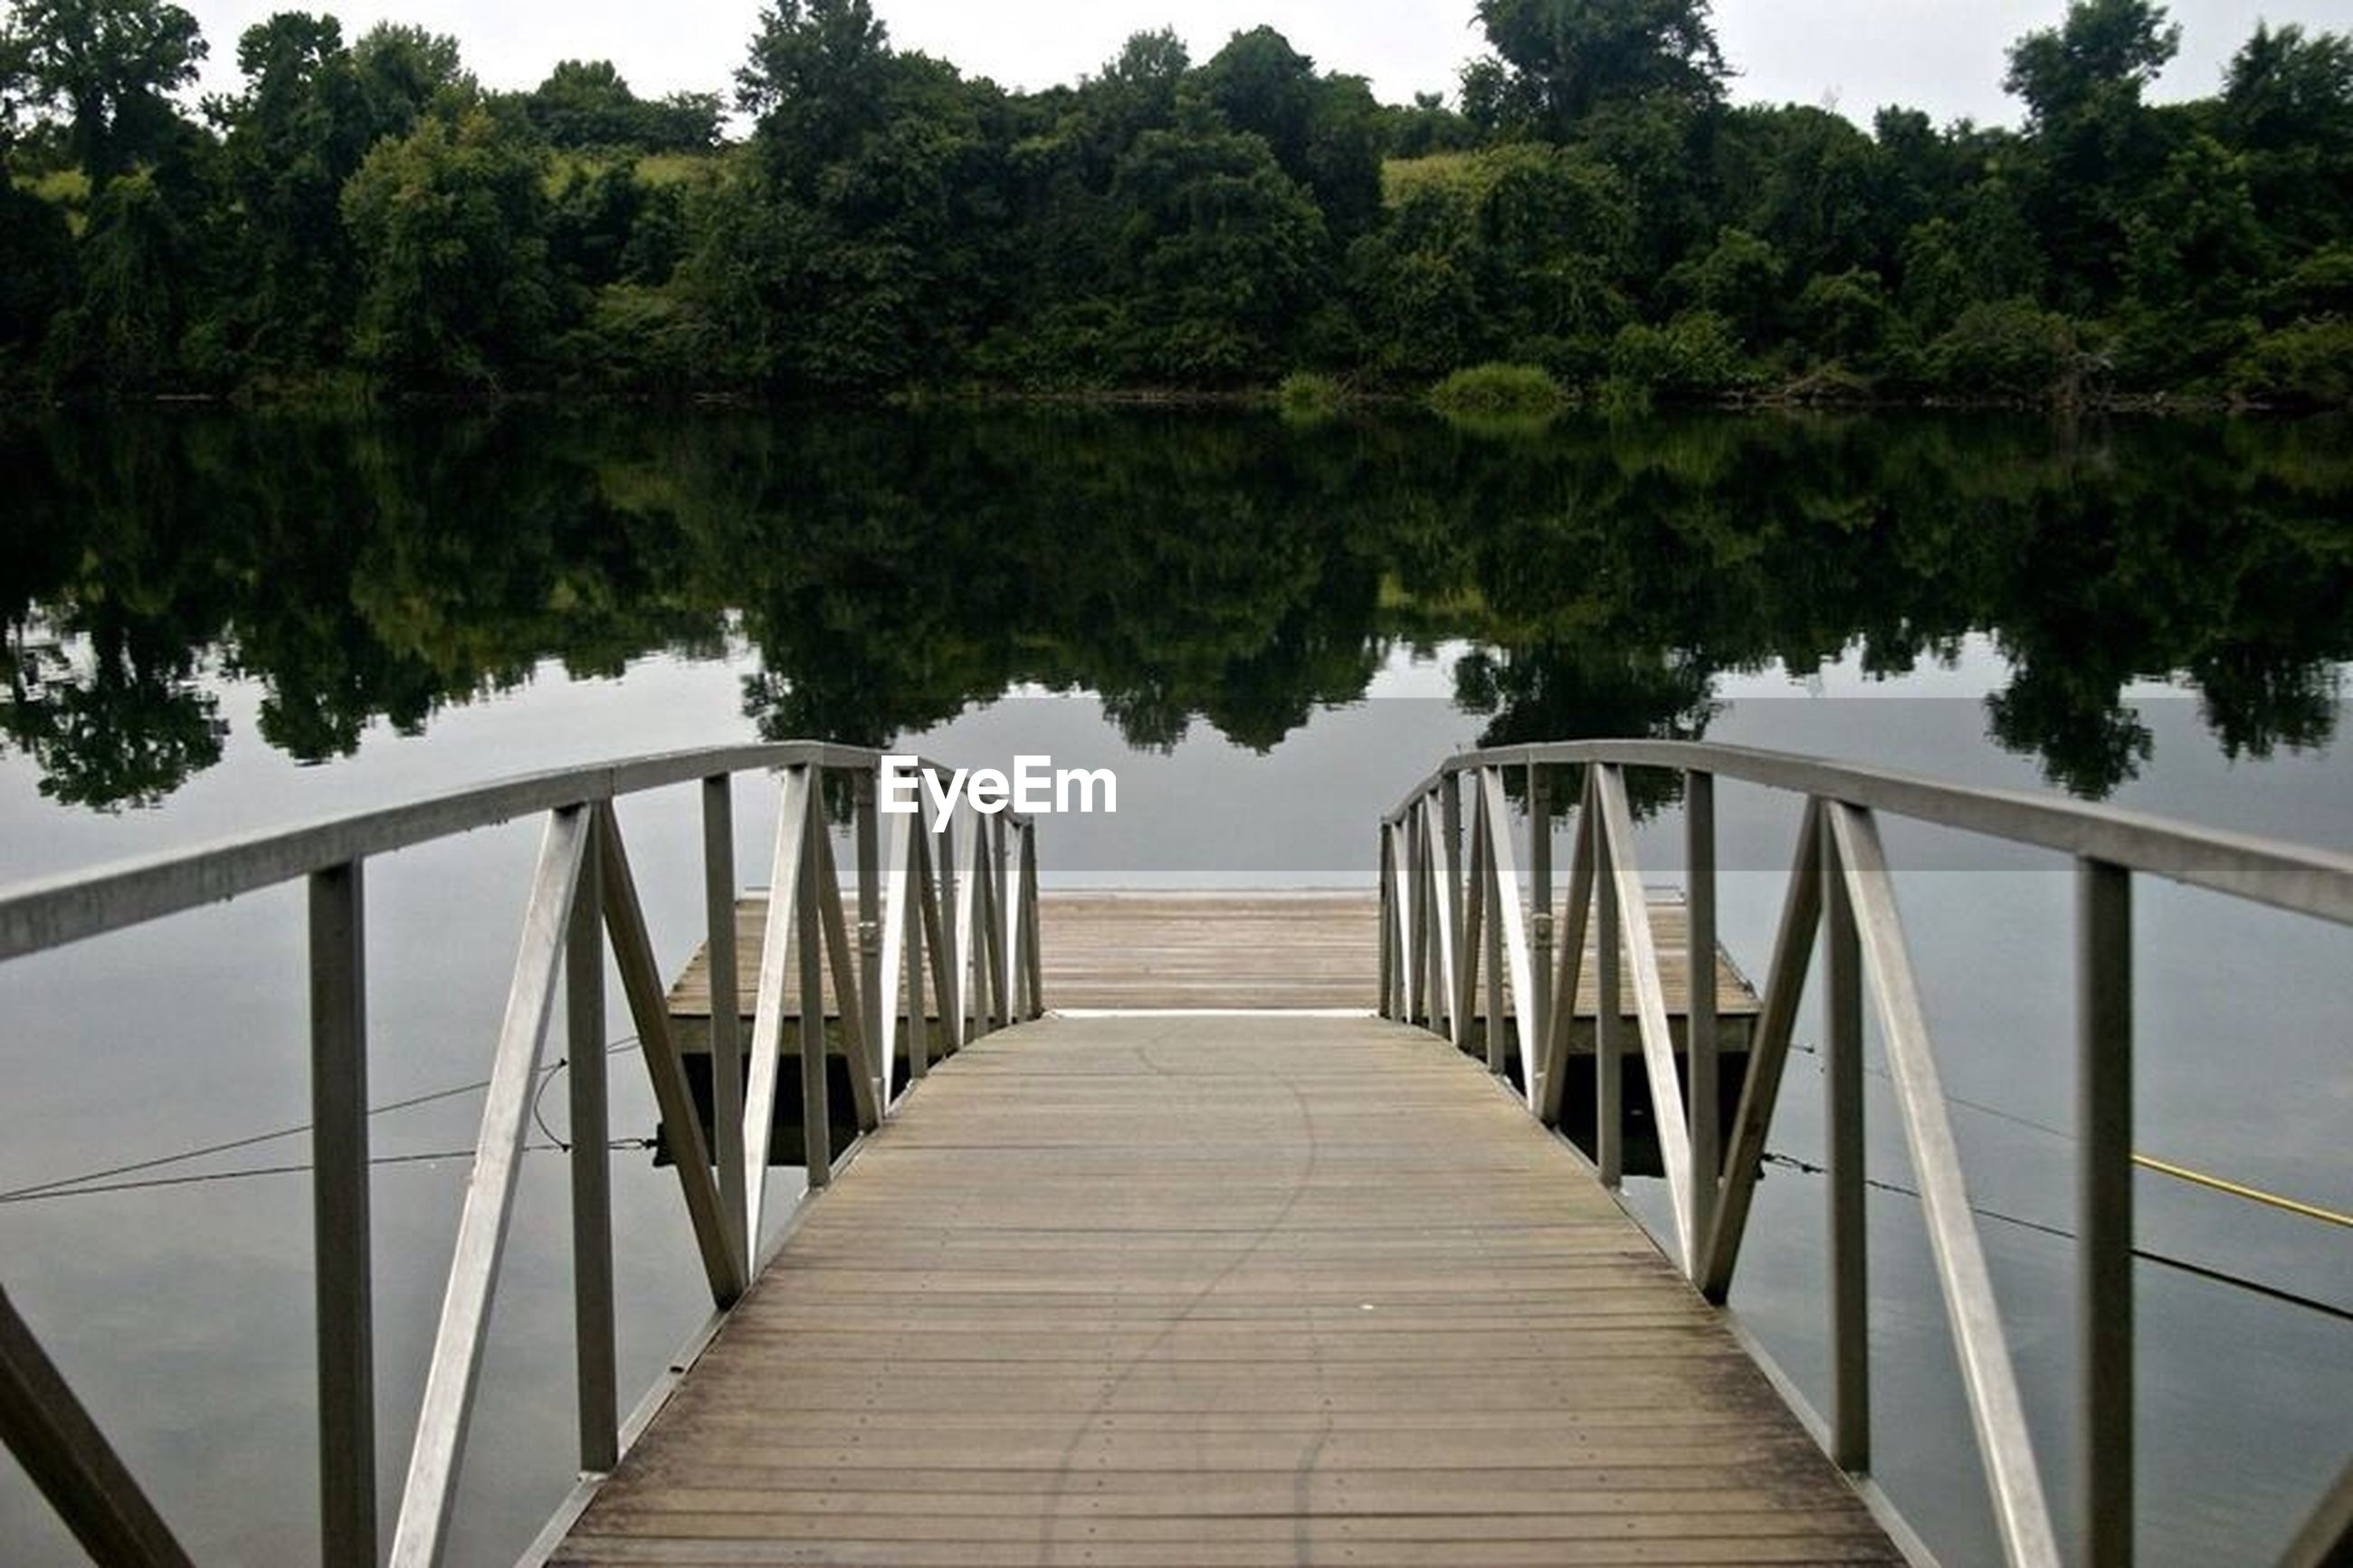 tree, the way forward, railing, water, diminishing perspective, footbridge, connection, lake, reflection, built structure, tranquility, sky, transportation, nature, bridge - man made structure, day, tranquil scene, river, vanishing point, no people